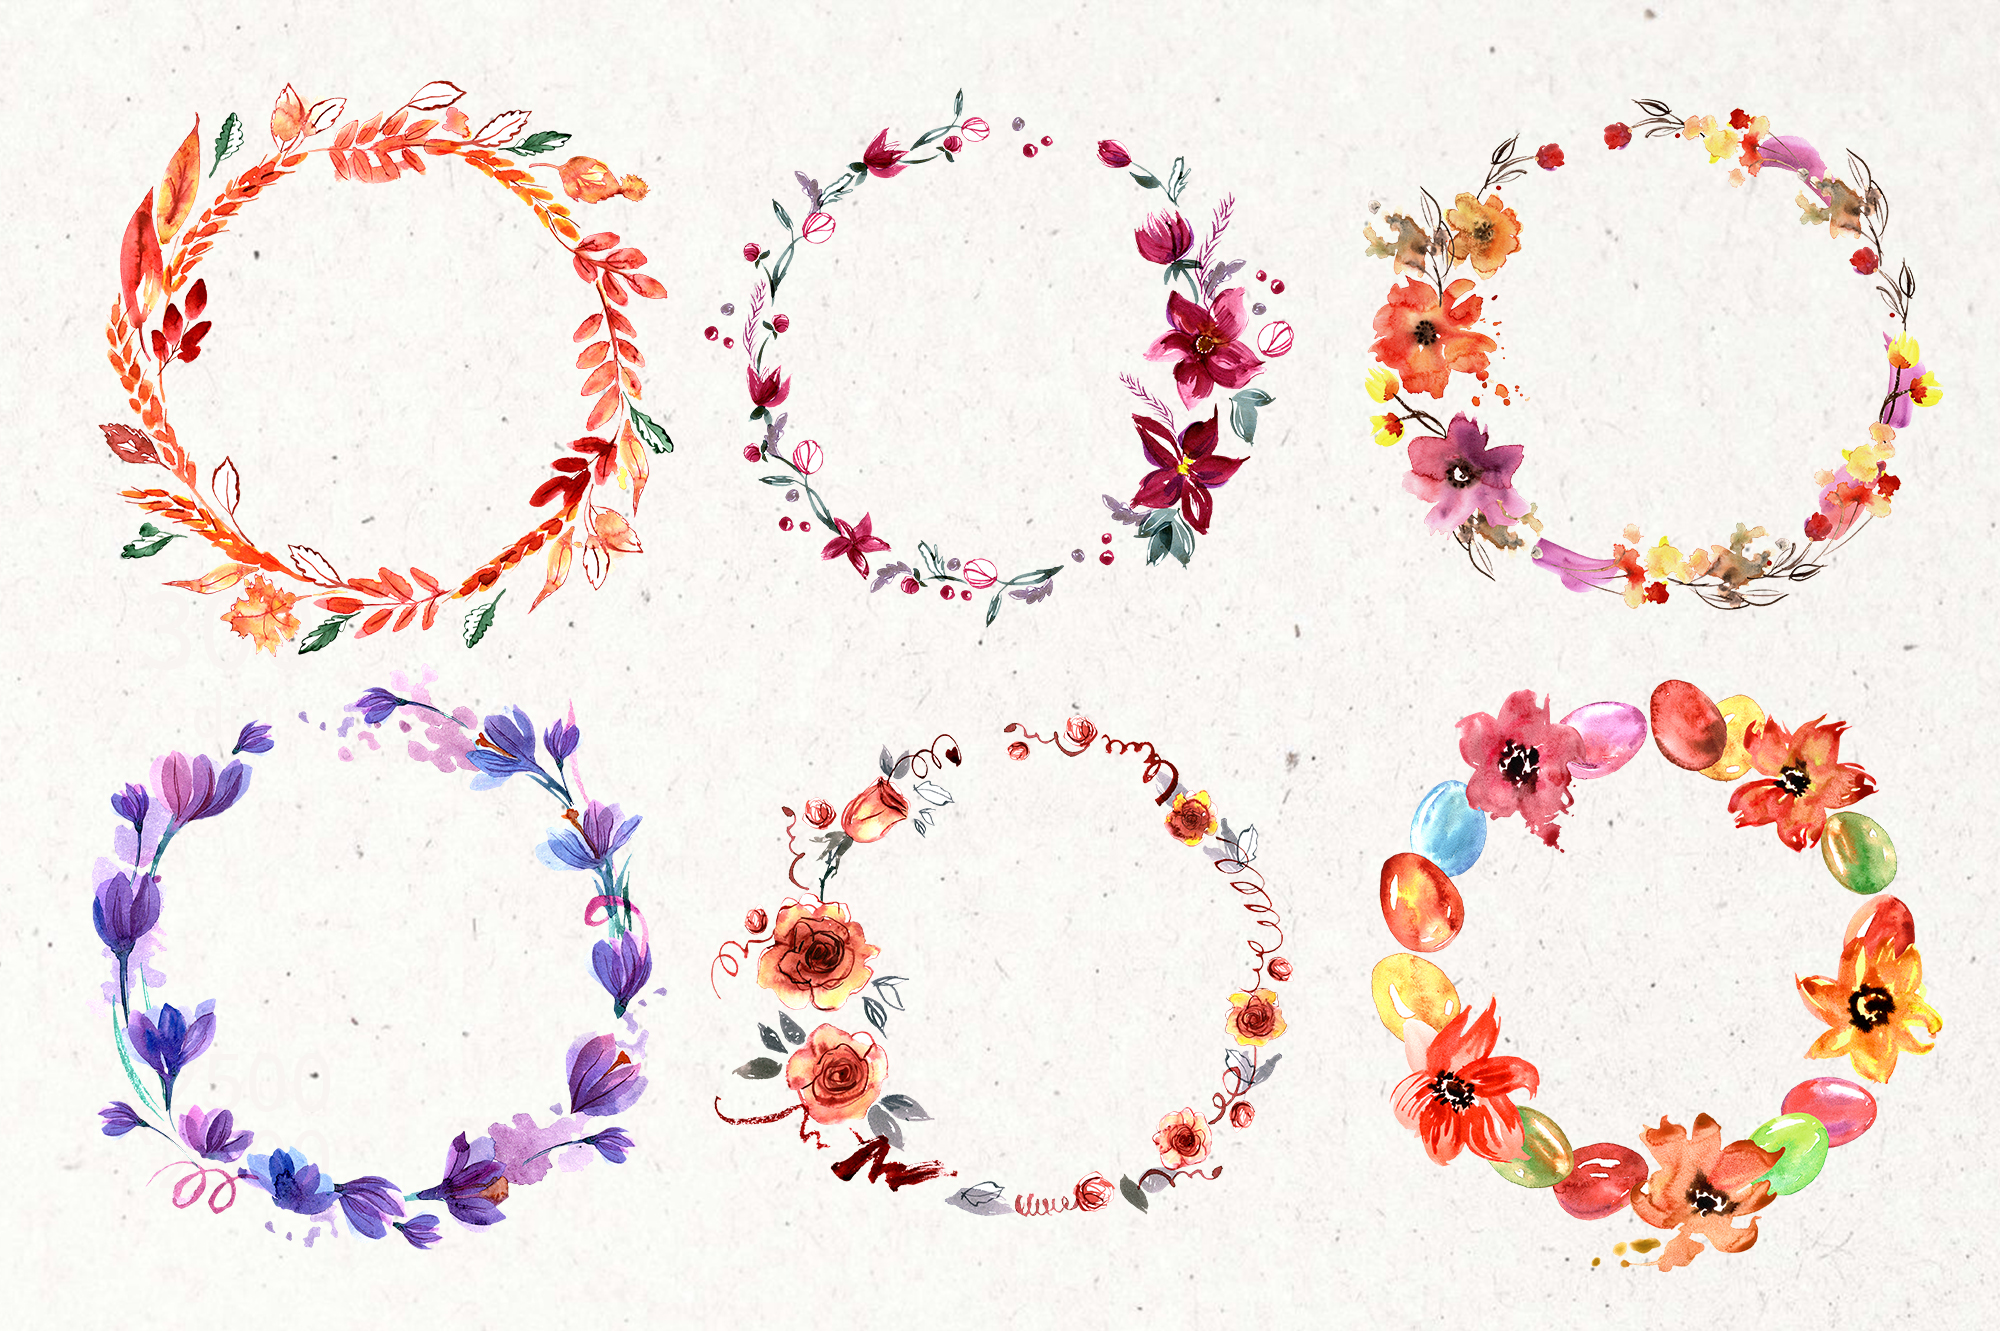 30 Watercolor Floral Wreaths example image 6